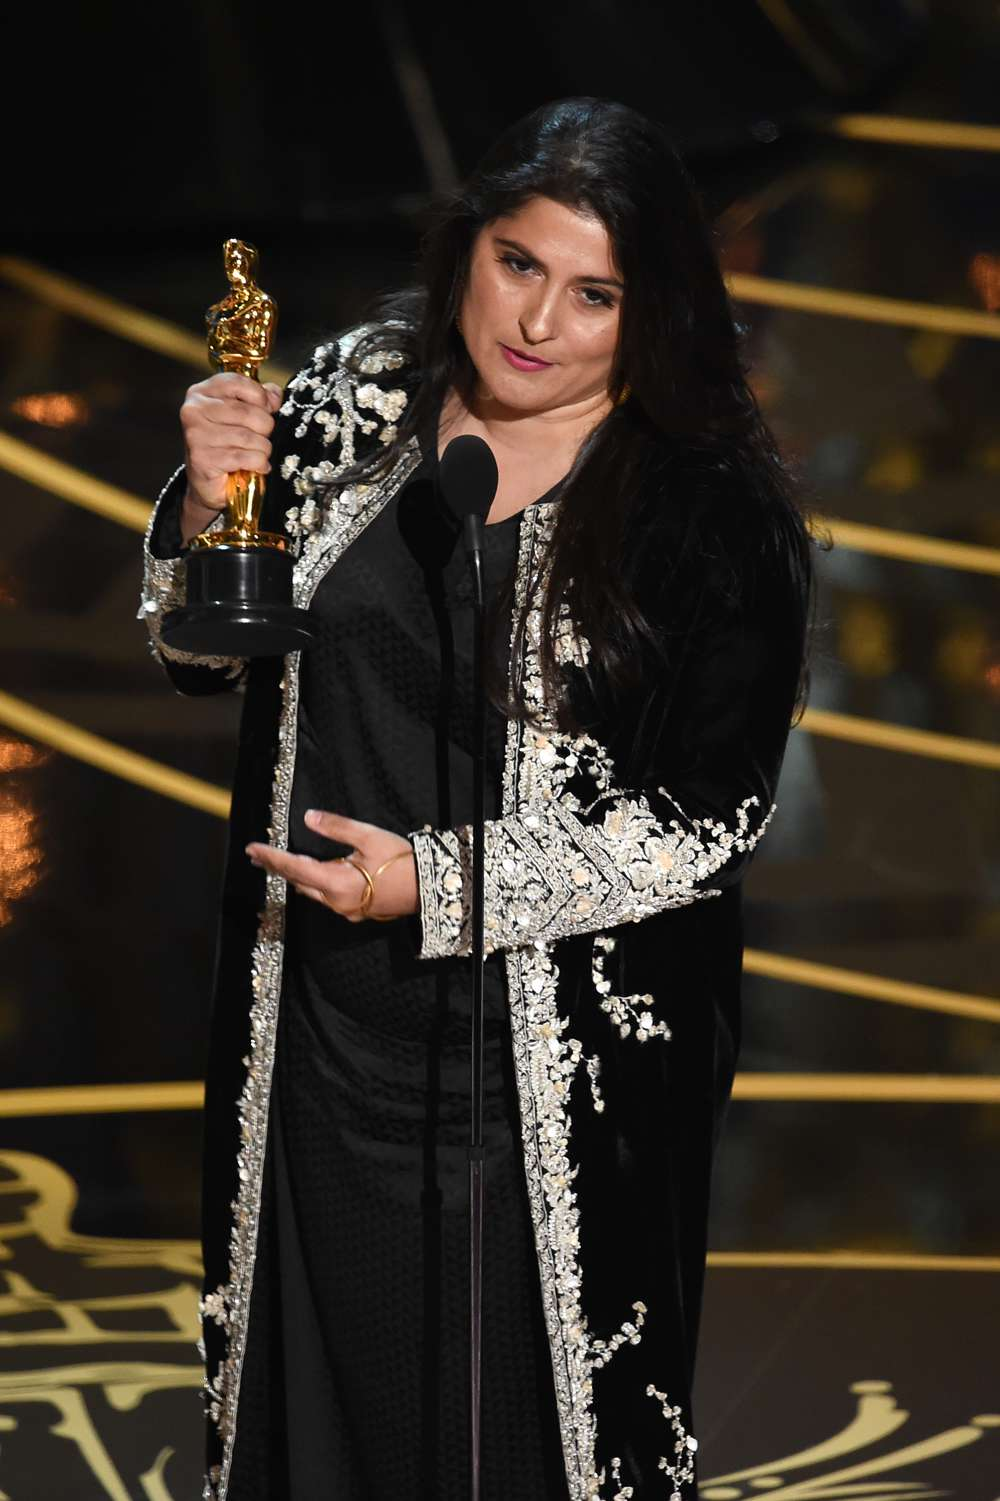 Pakistani filmmaker Sharmeen Obaid-Chinoy with her Oscar for the short documentary 'A Girl in the River'.